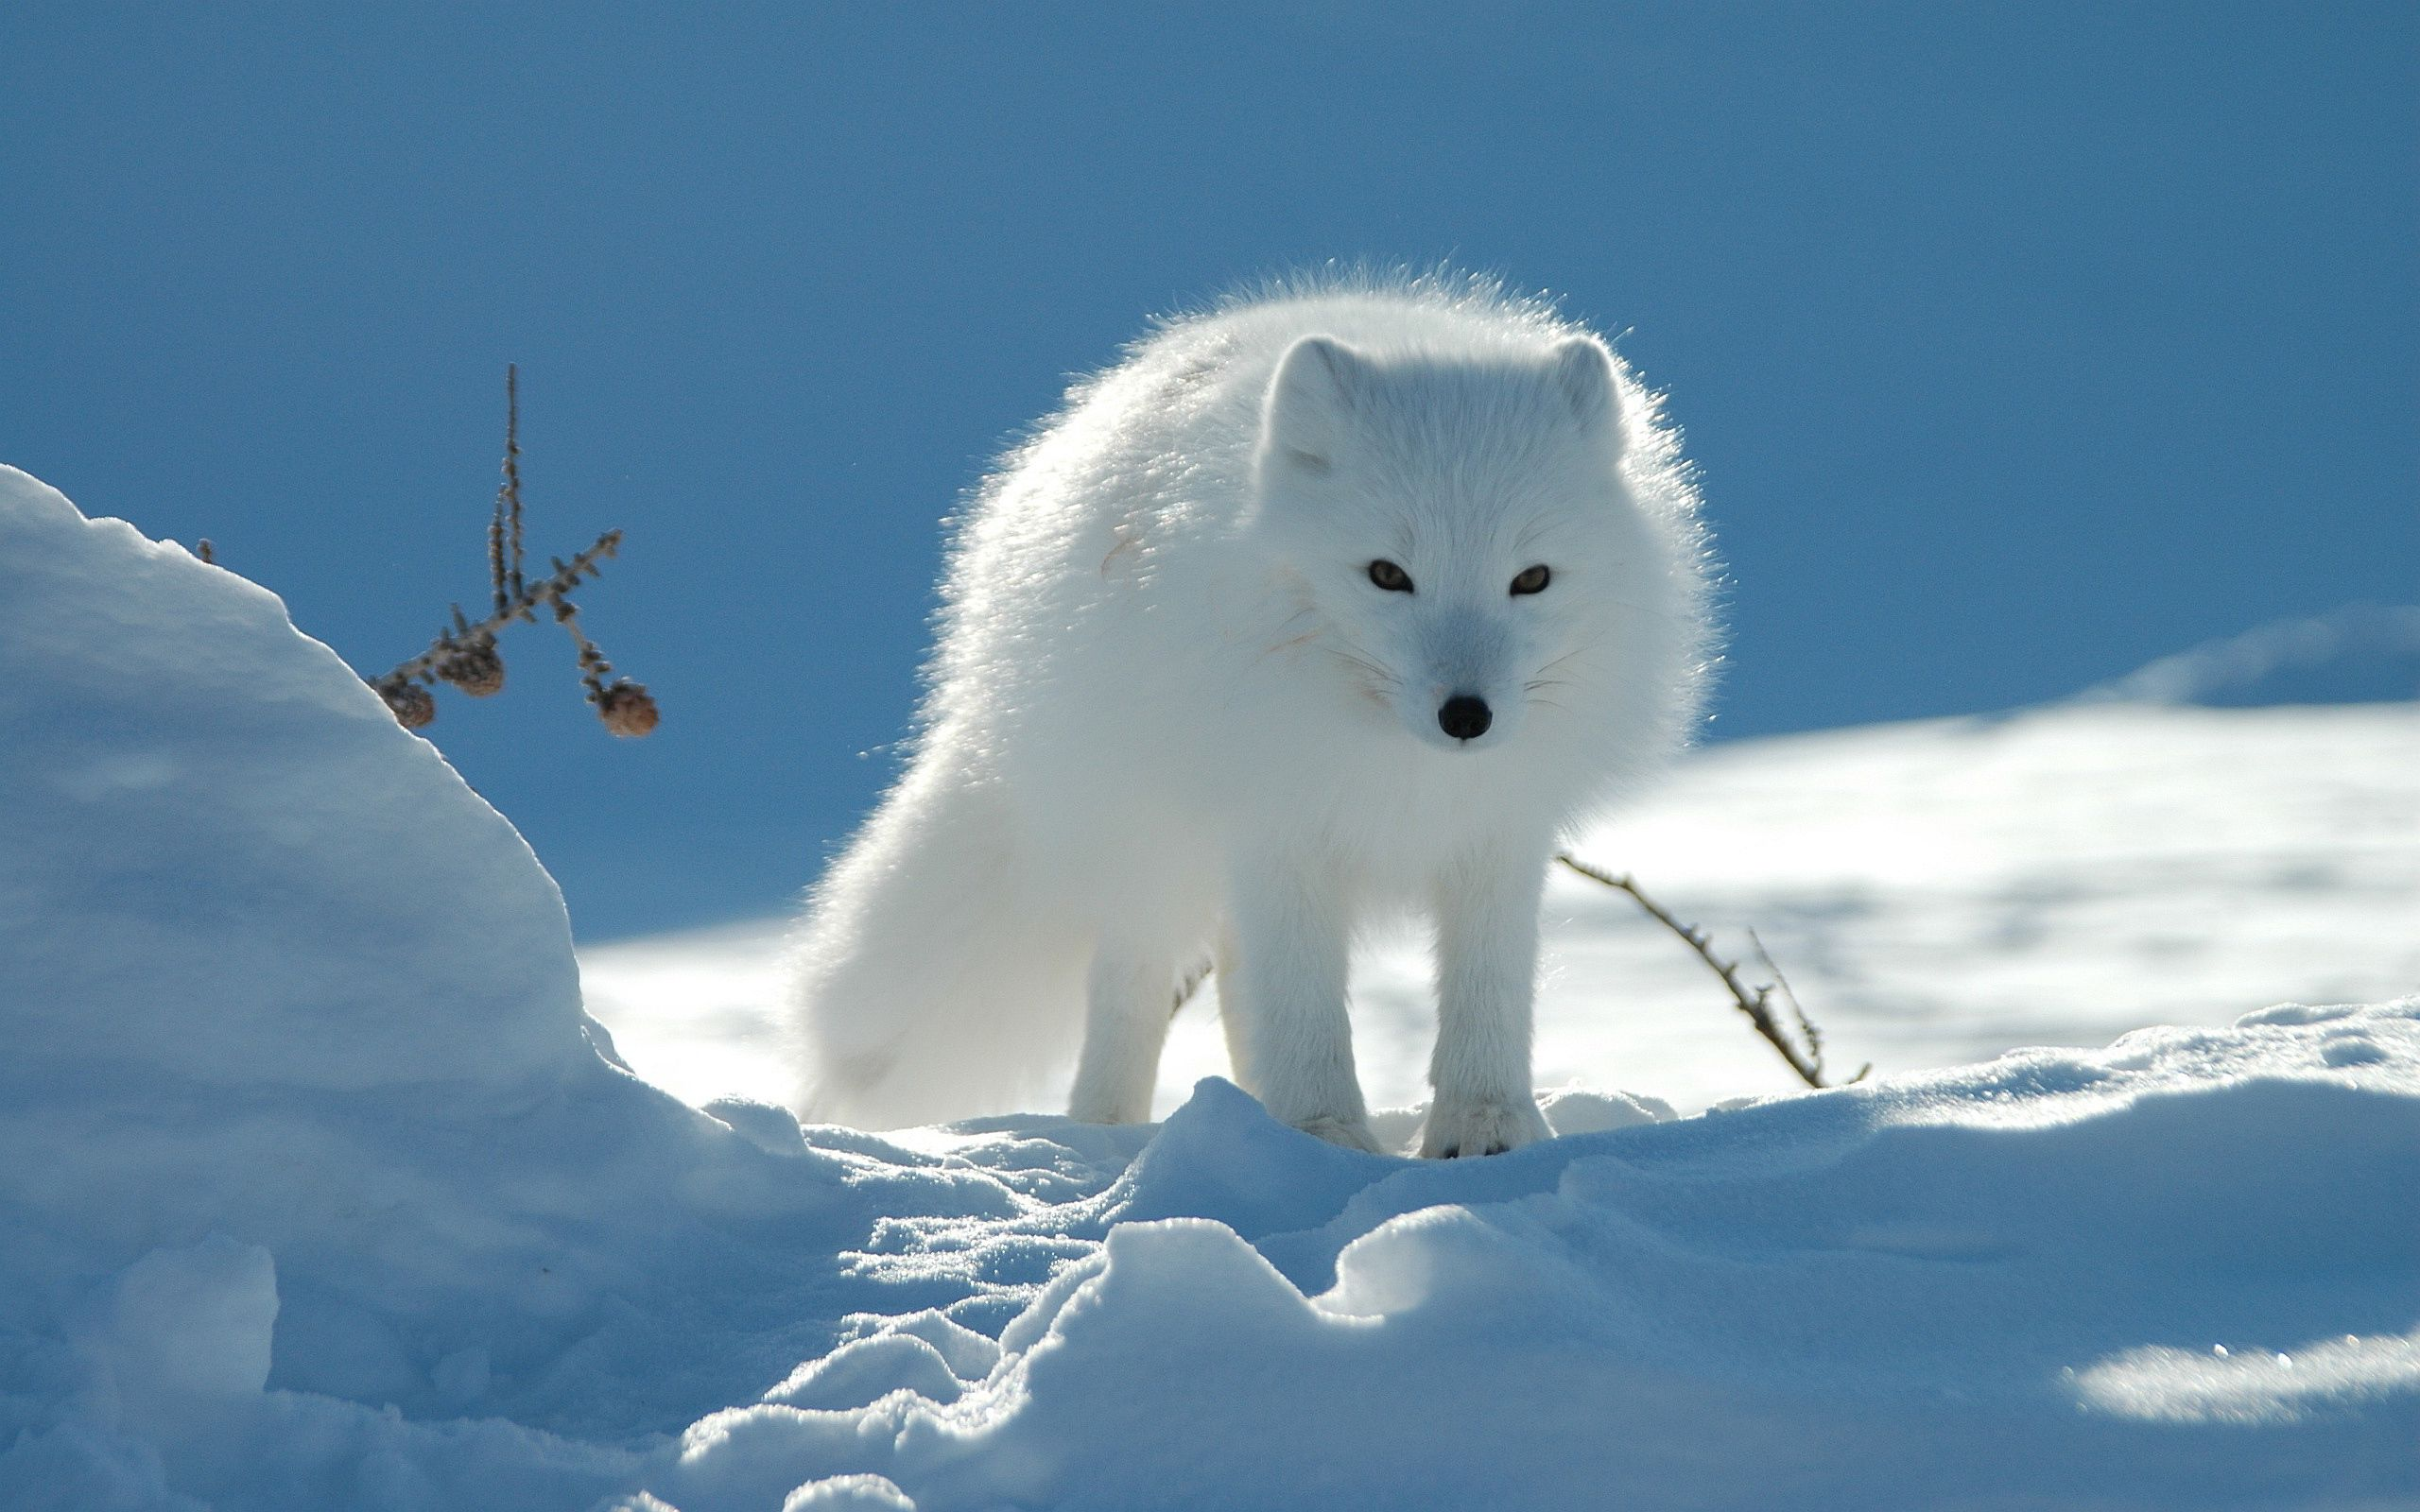 A red fox (Vulpes vulpes) standing in the snow